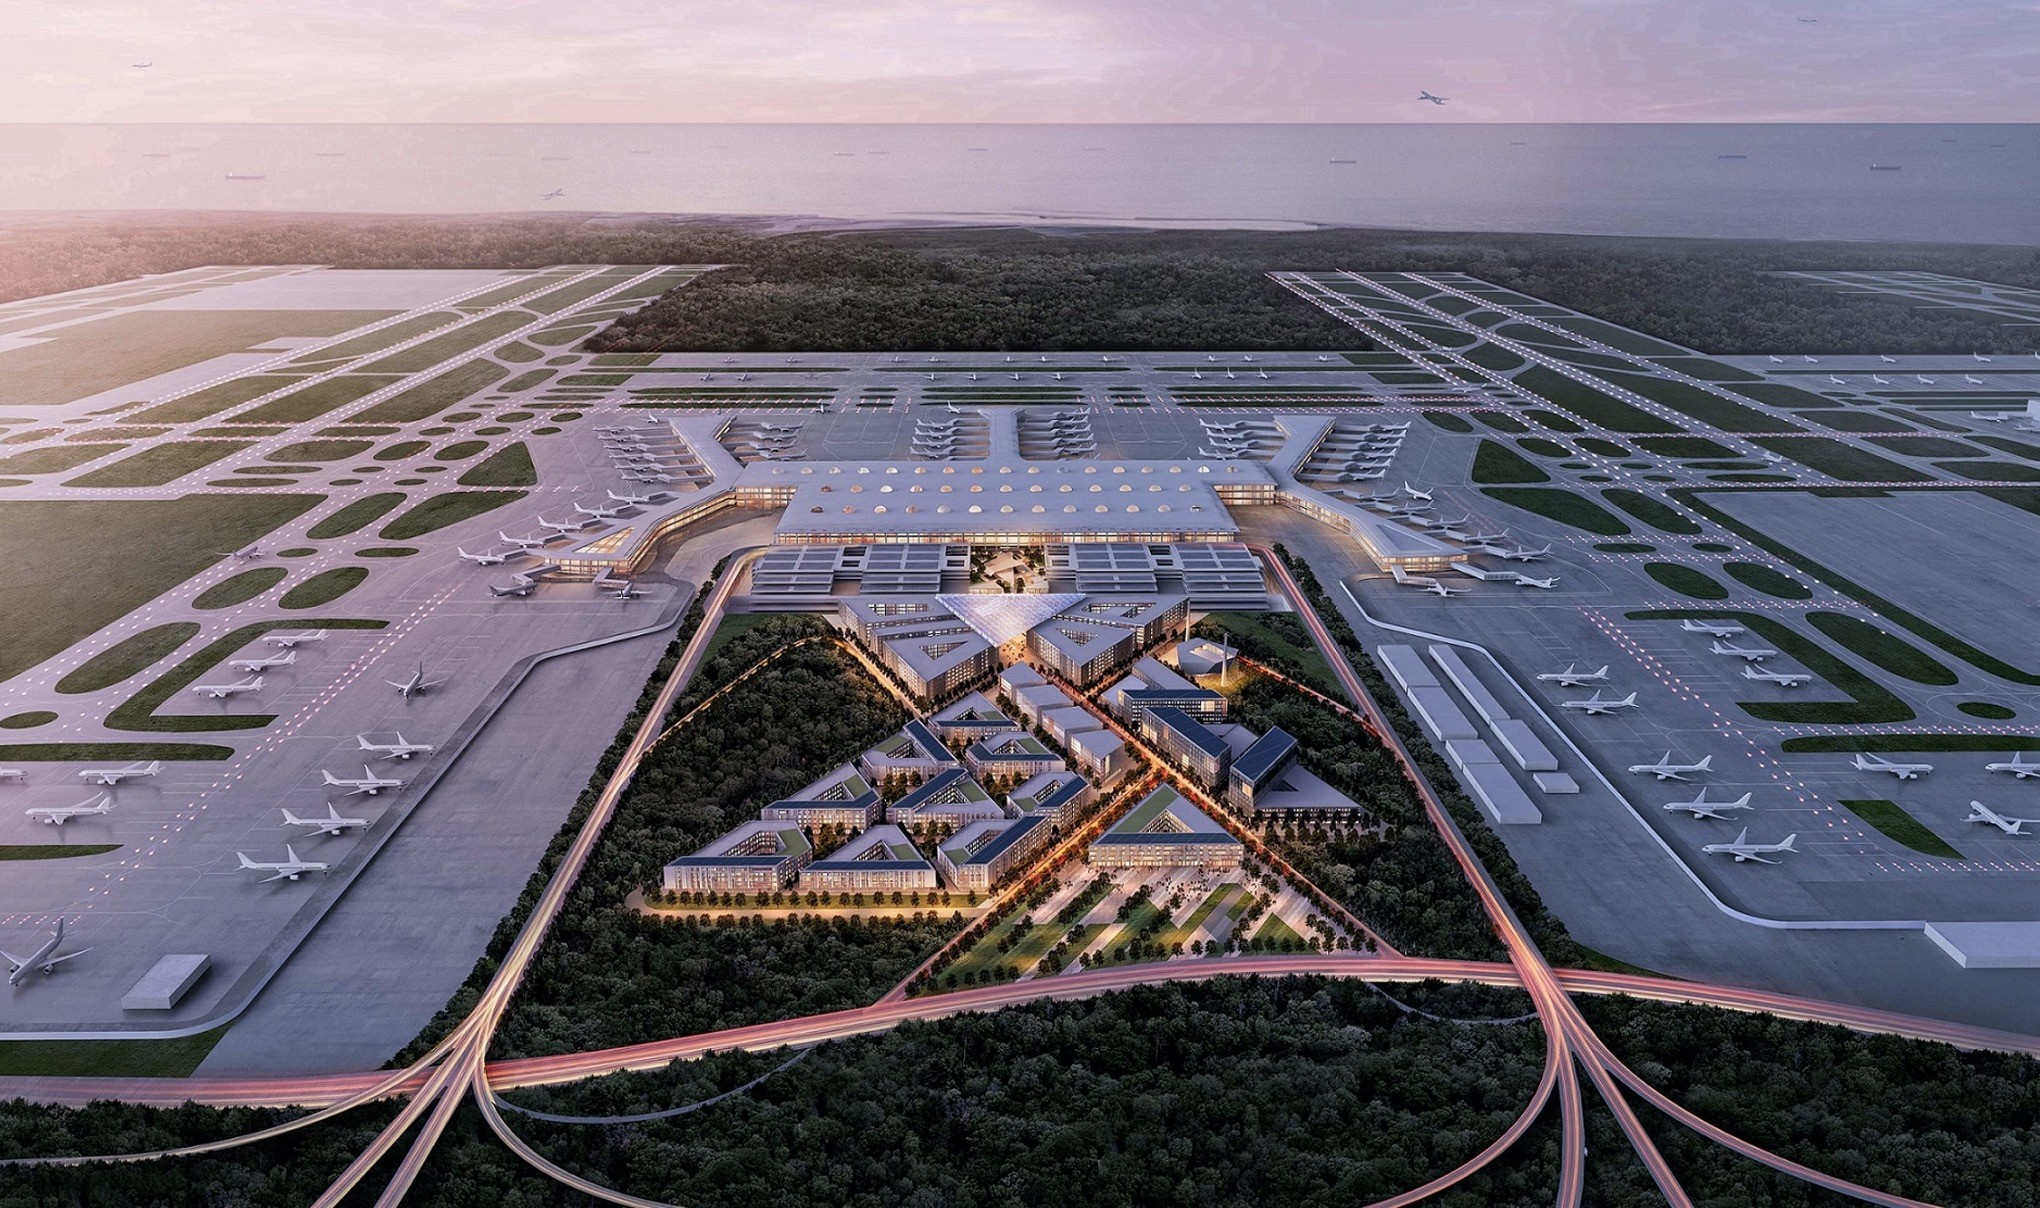 Istanbul New Airport is one of Turkeyu2019s largest construction project ever with investments of approximately 40 billion euros, planned to go operational in 2018.